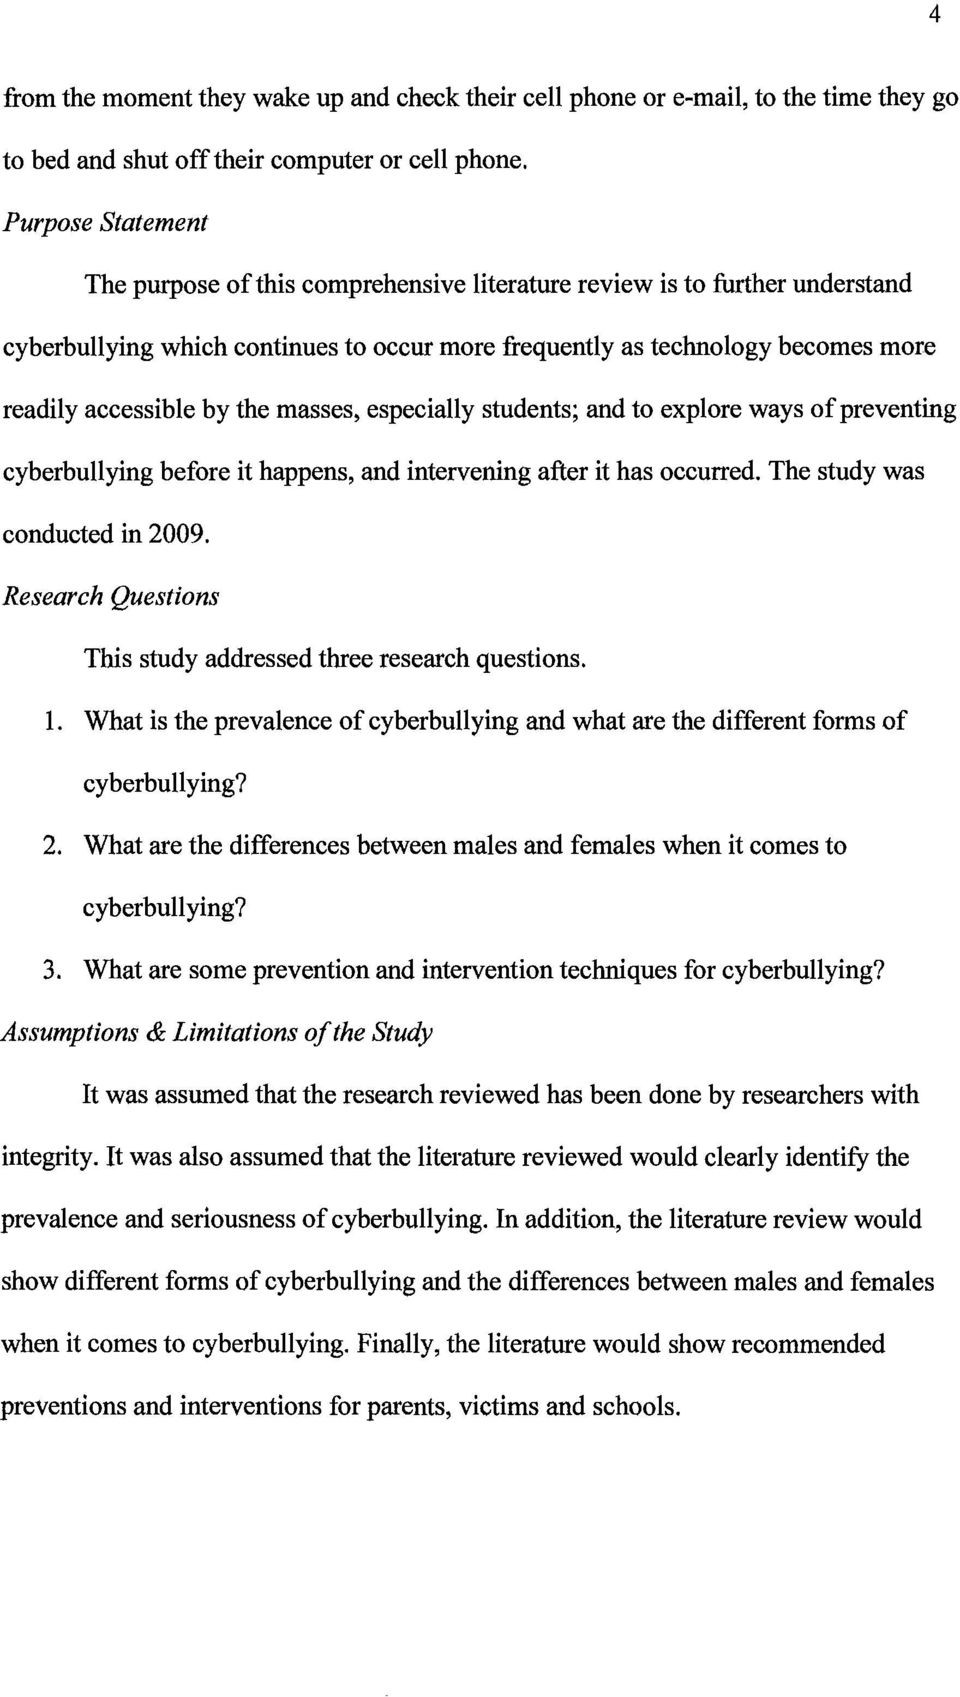 004 Cyberbullying Research Questions Paper Page 8 Awful Topics Topic 960